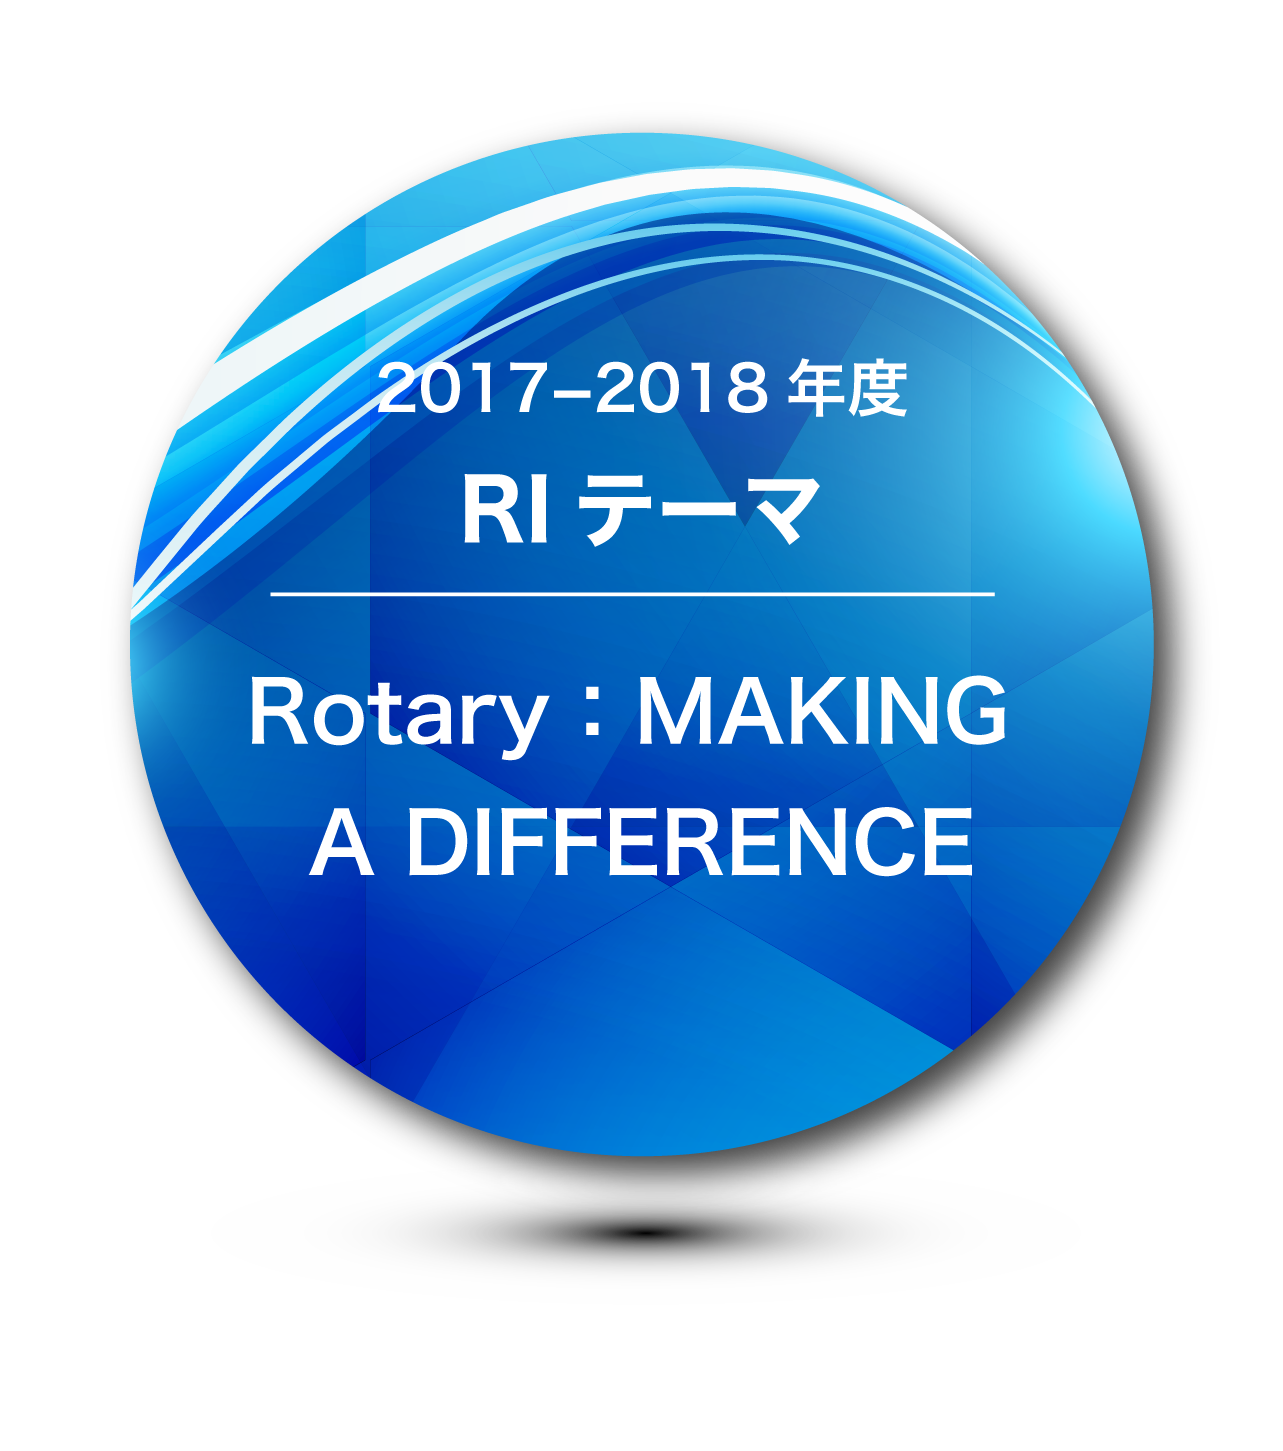 RIテーマ:Rotary: Making A Difference